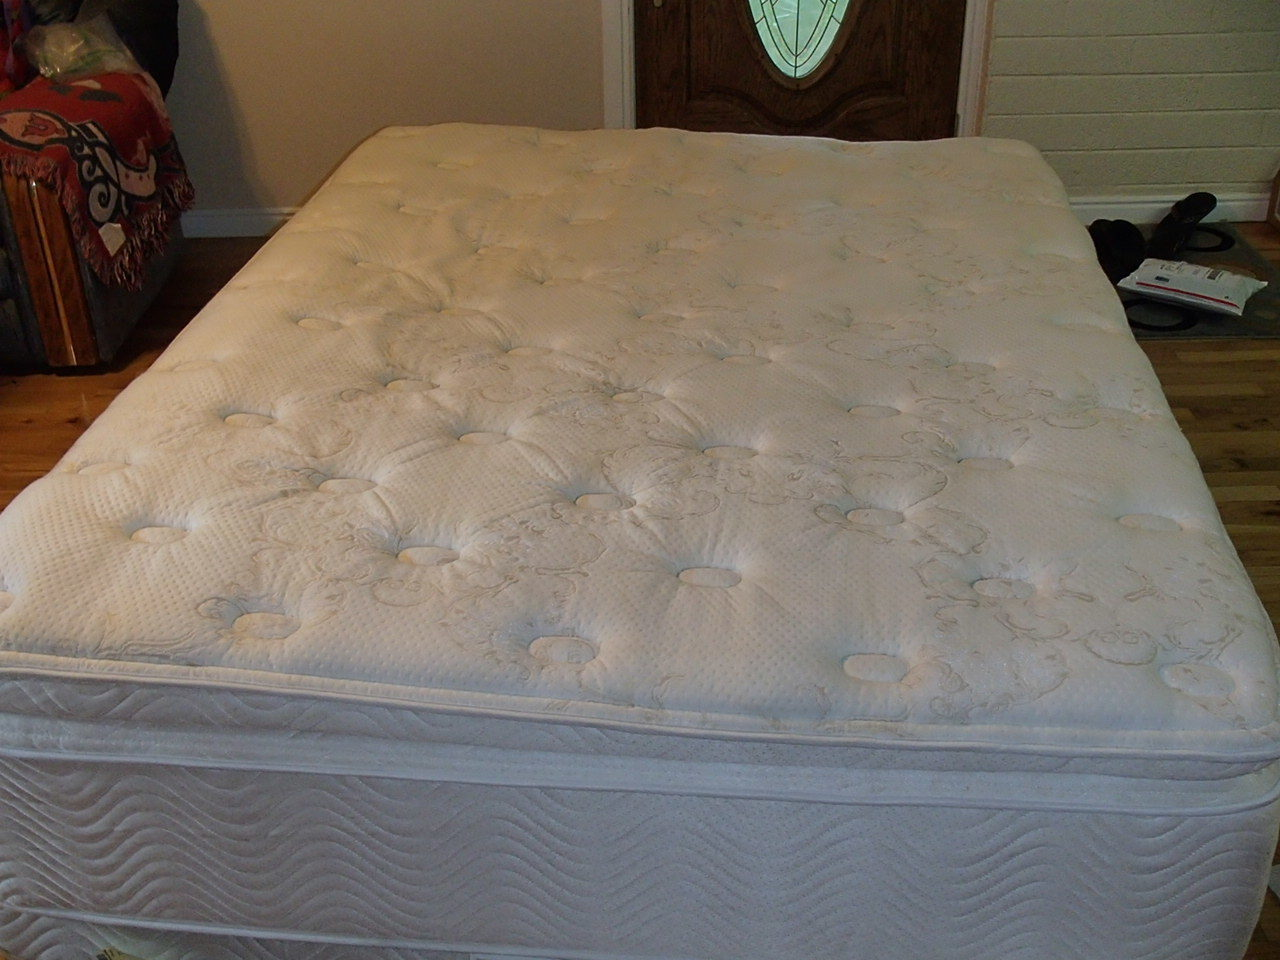 I bought a Simmons Beautyrest Pillow Top Queen Mattress and box spring from  Linda's Furniture for just under $2000. I need a firm mattress for back  pain.